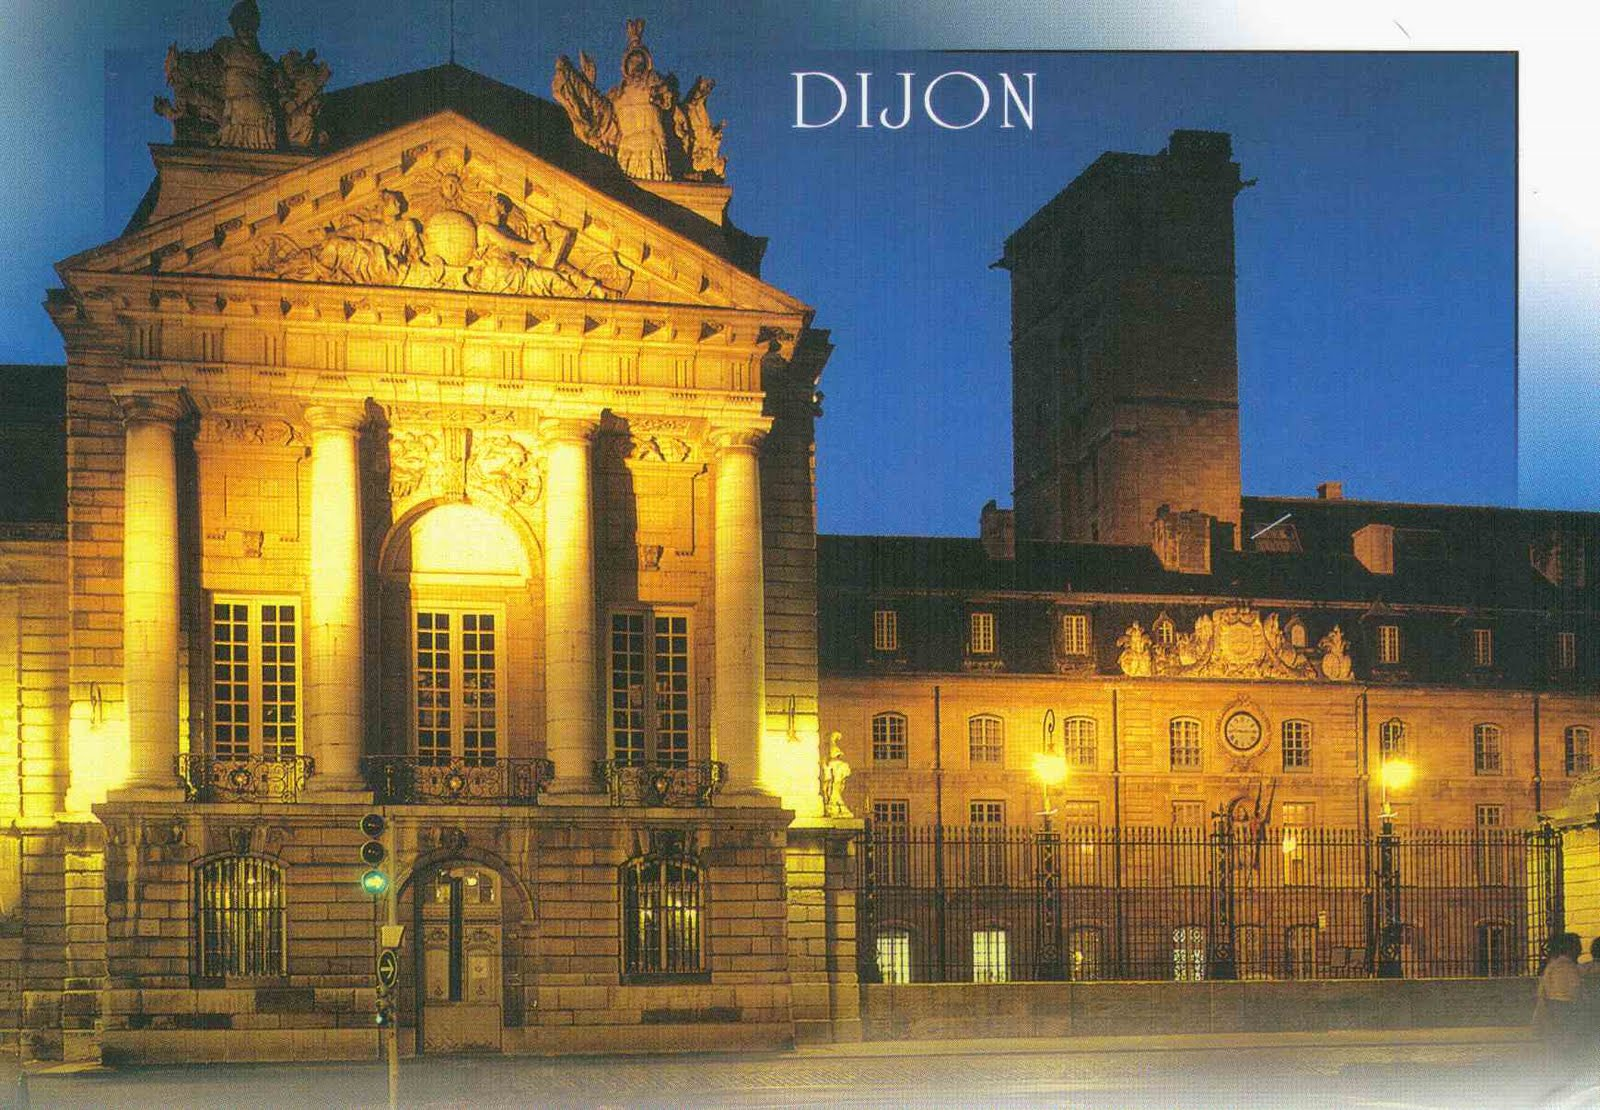 Terence 39 s collections postcard from dijon france - Institut culturel italien paris ...